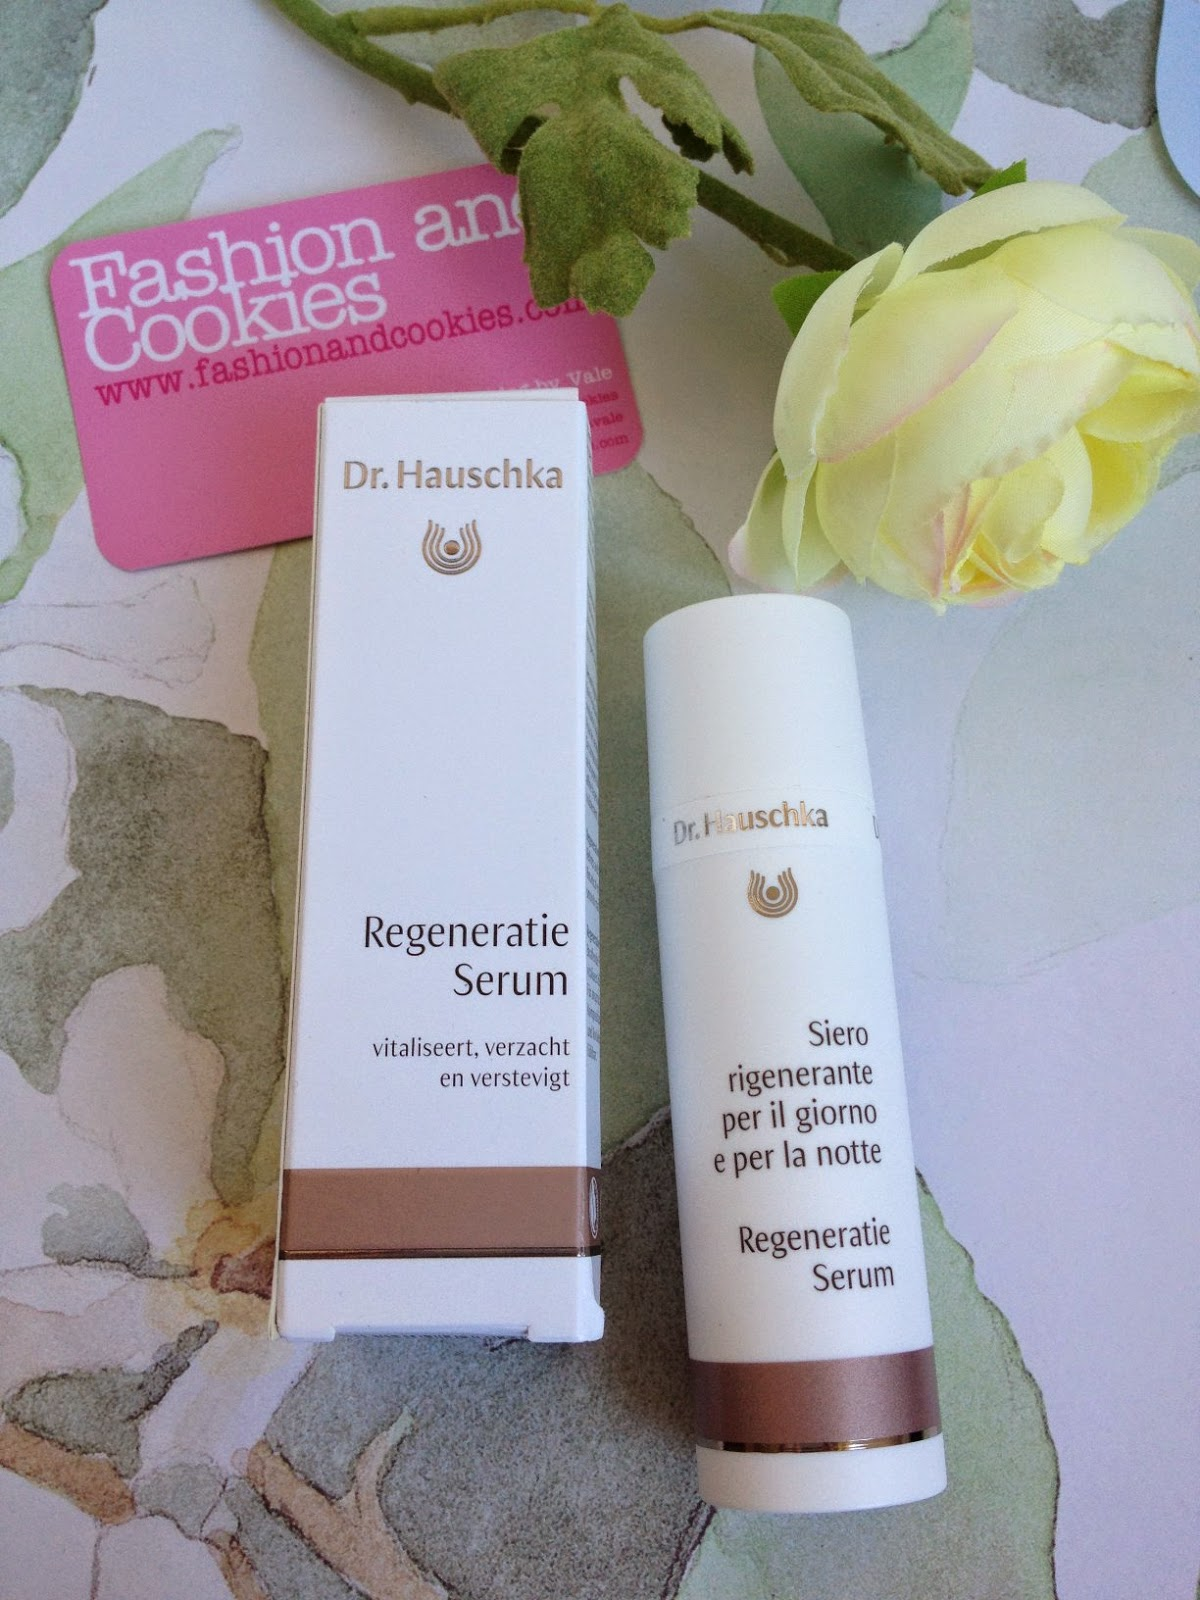 new Dr. Hauschka foundation, siero rigenerante Dr. Hauschka, Fashion and Cookies fashion blog, recensione fondotinta Dr. Hauschka, beauty blogger